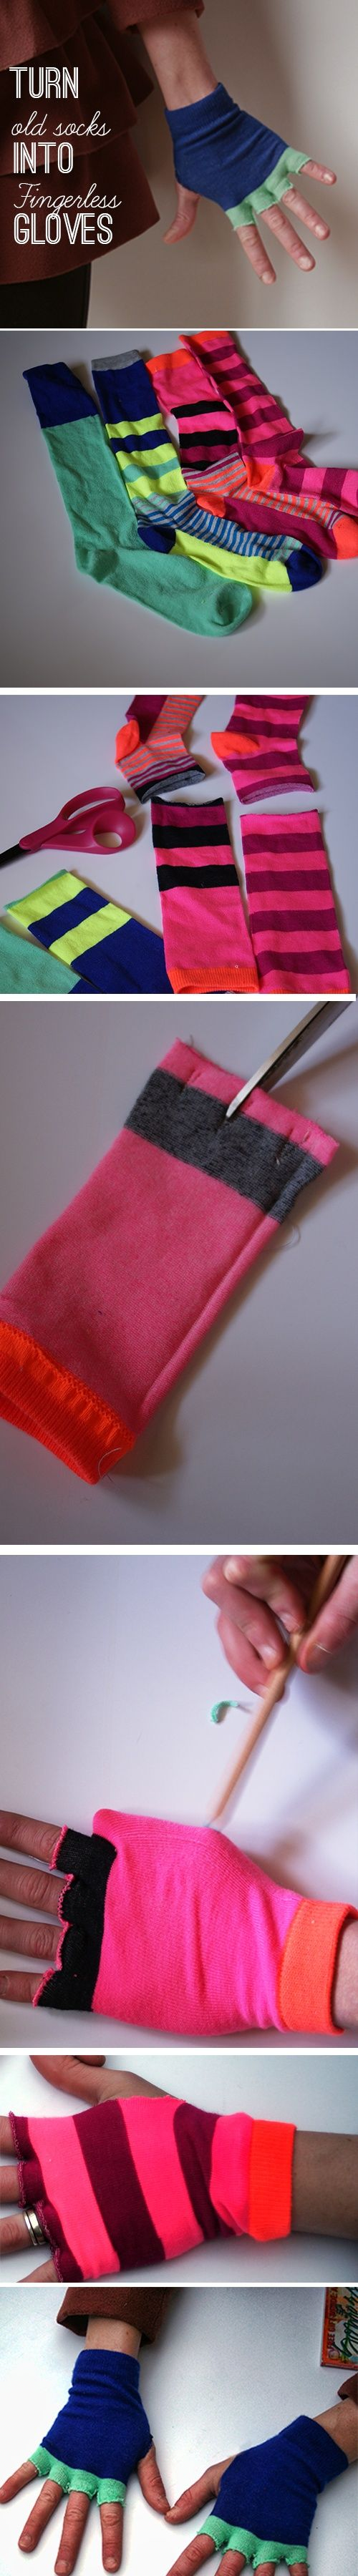 DIY gloves from old socks. My daughter is going to love these.